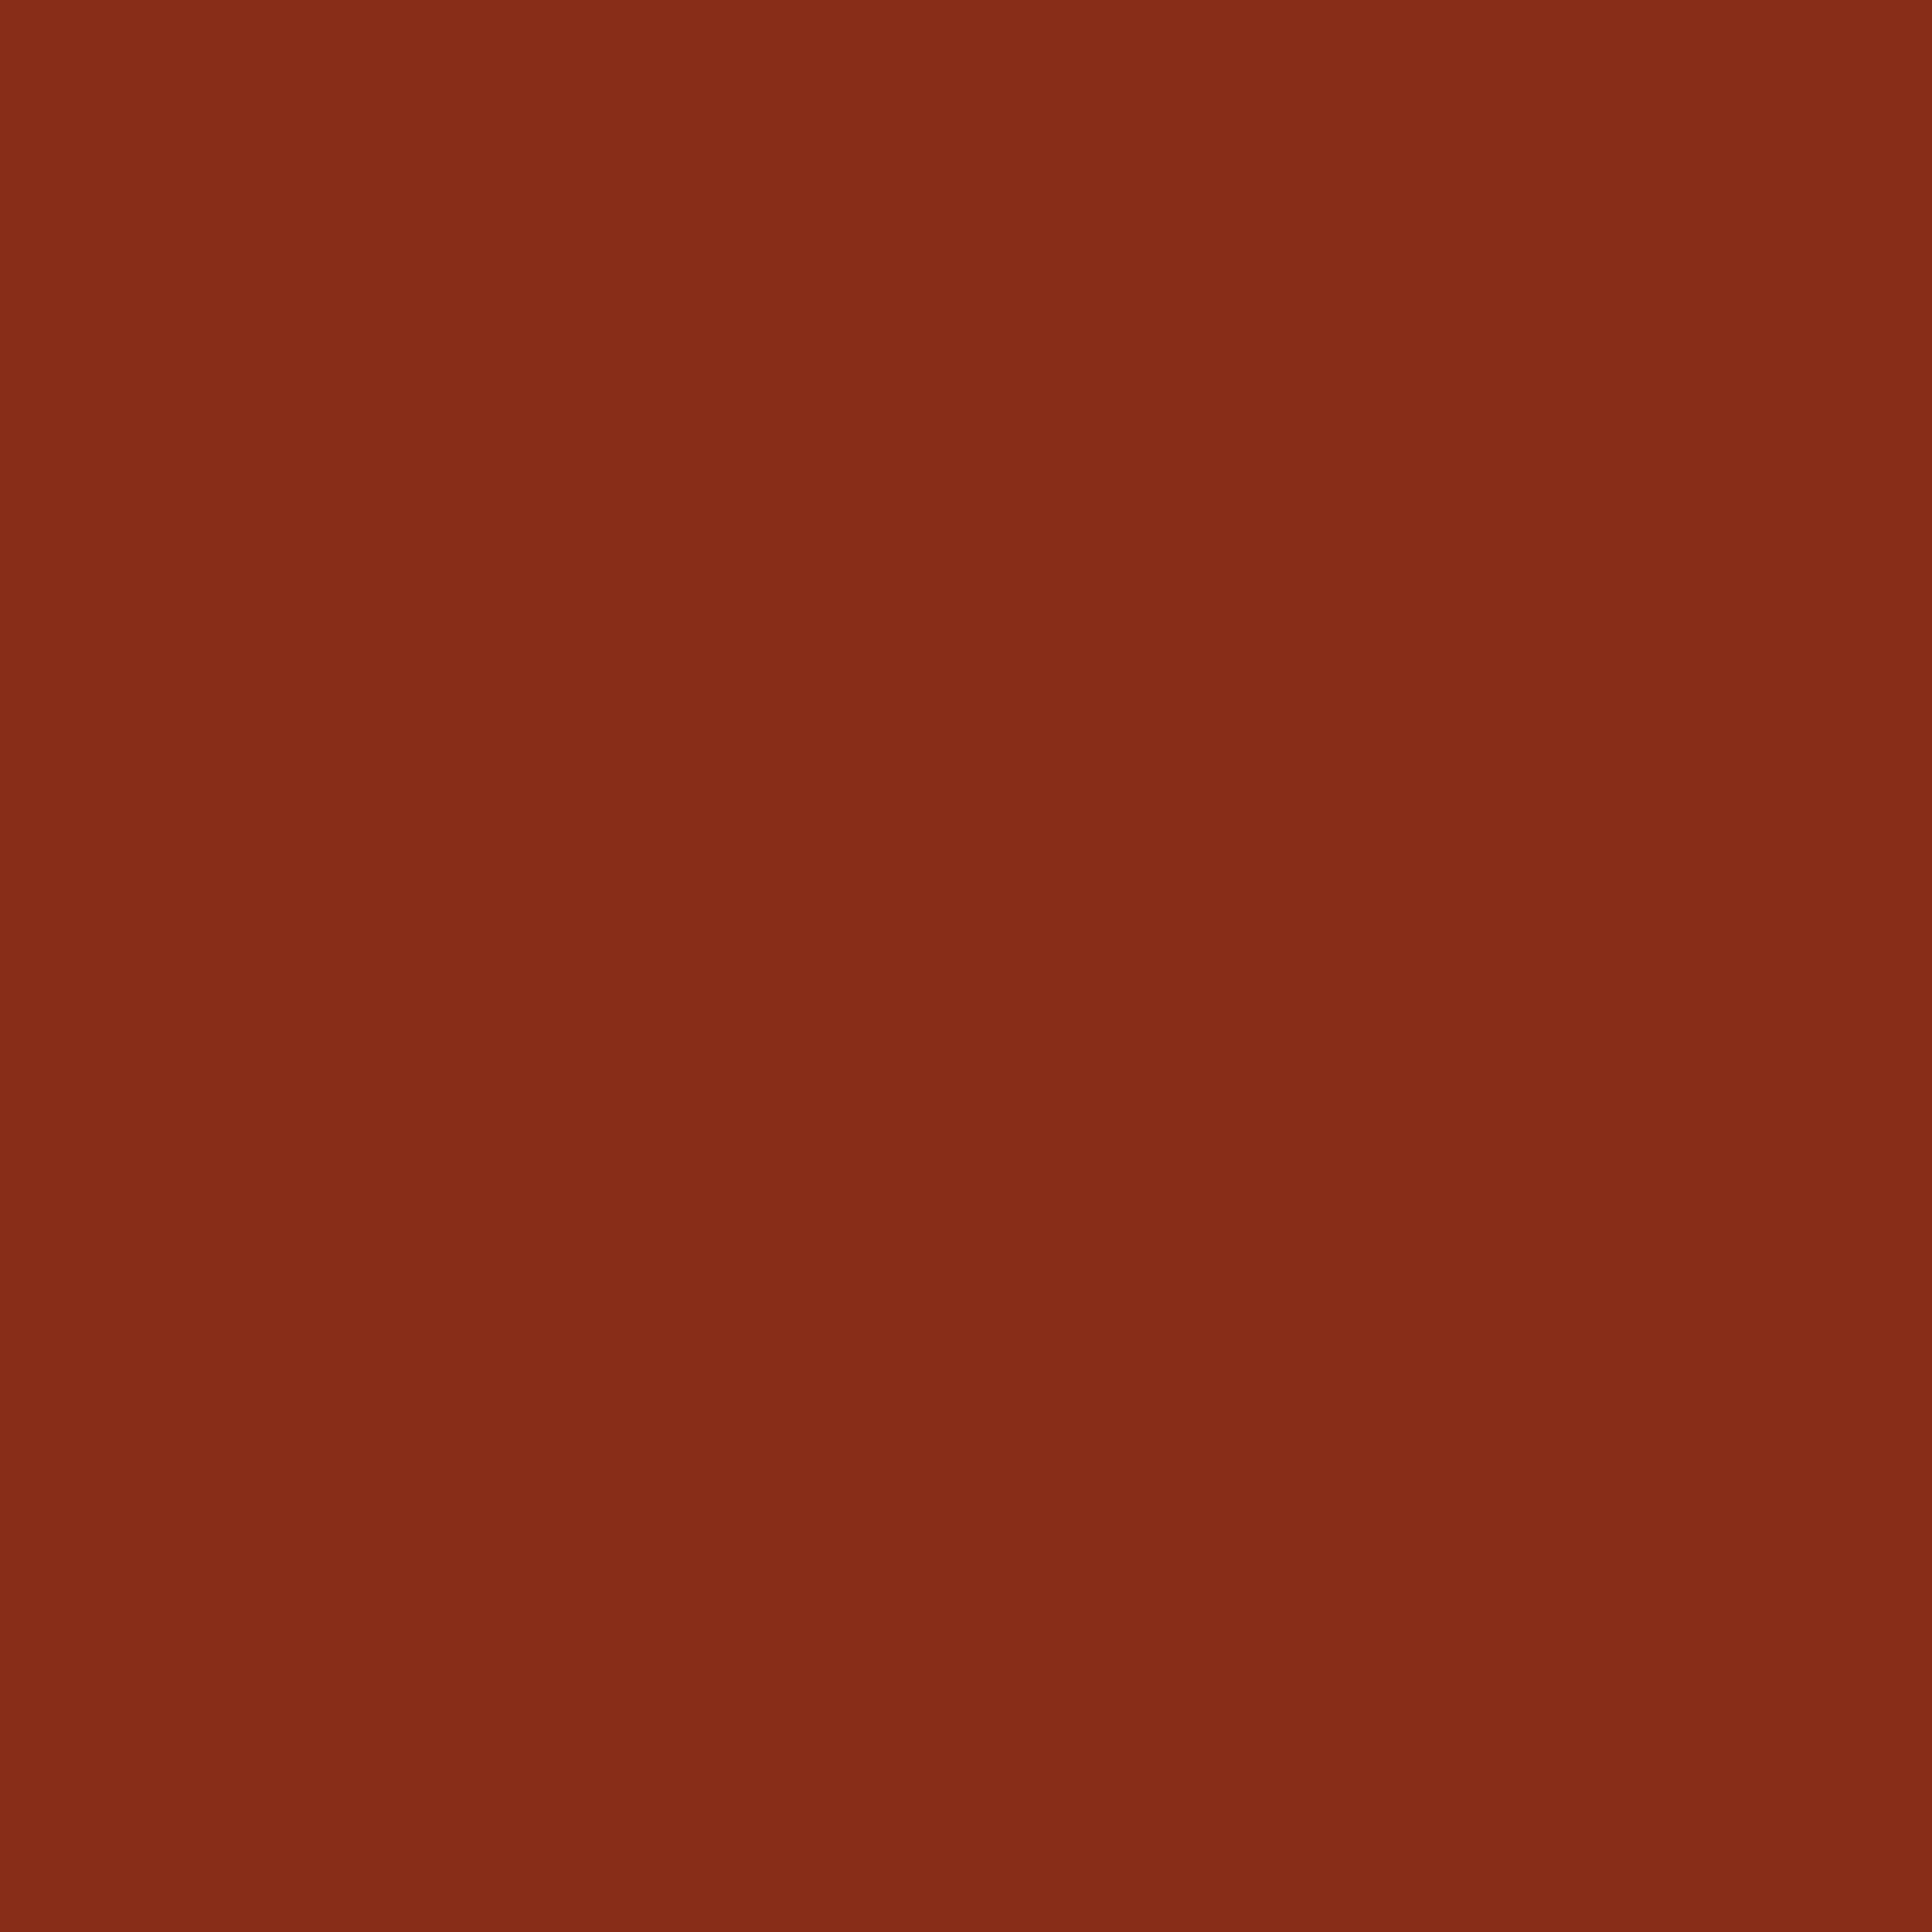 3600x3600 Sienna Solid Color Background